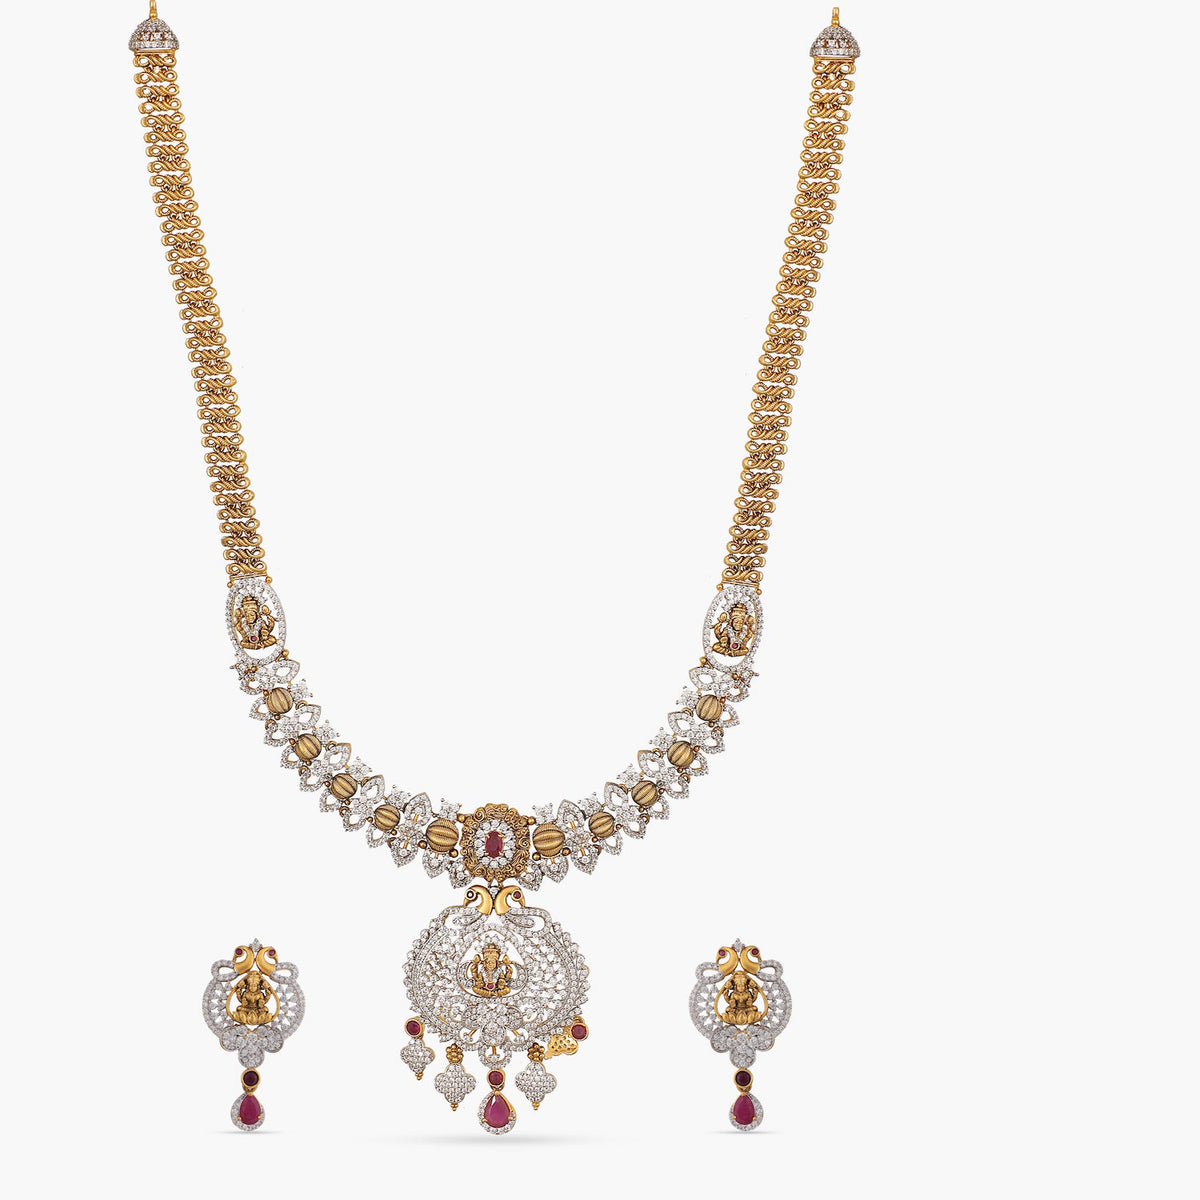 Swara Antique Long Necklace Set